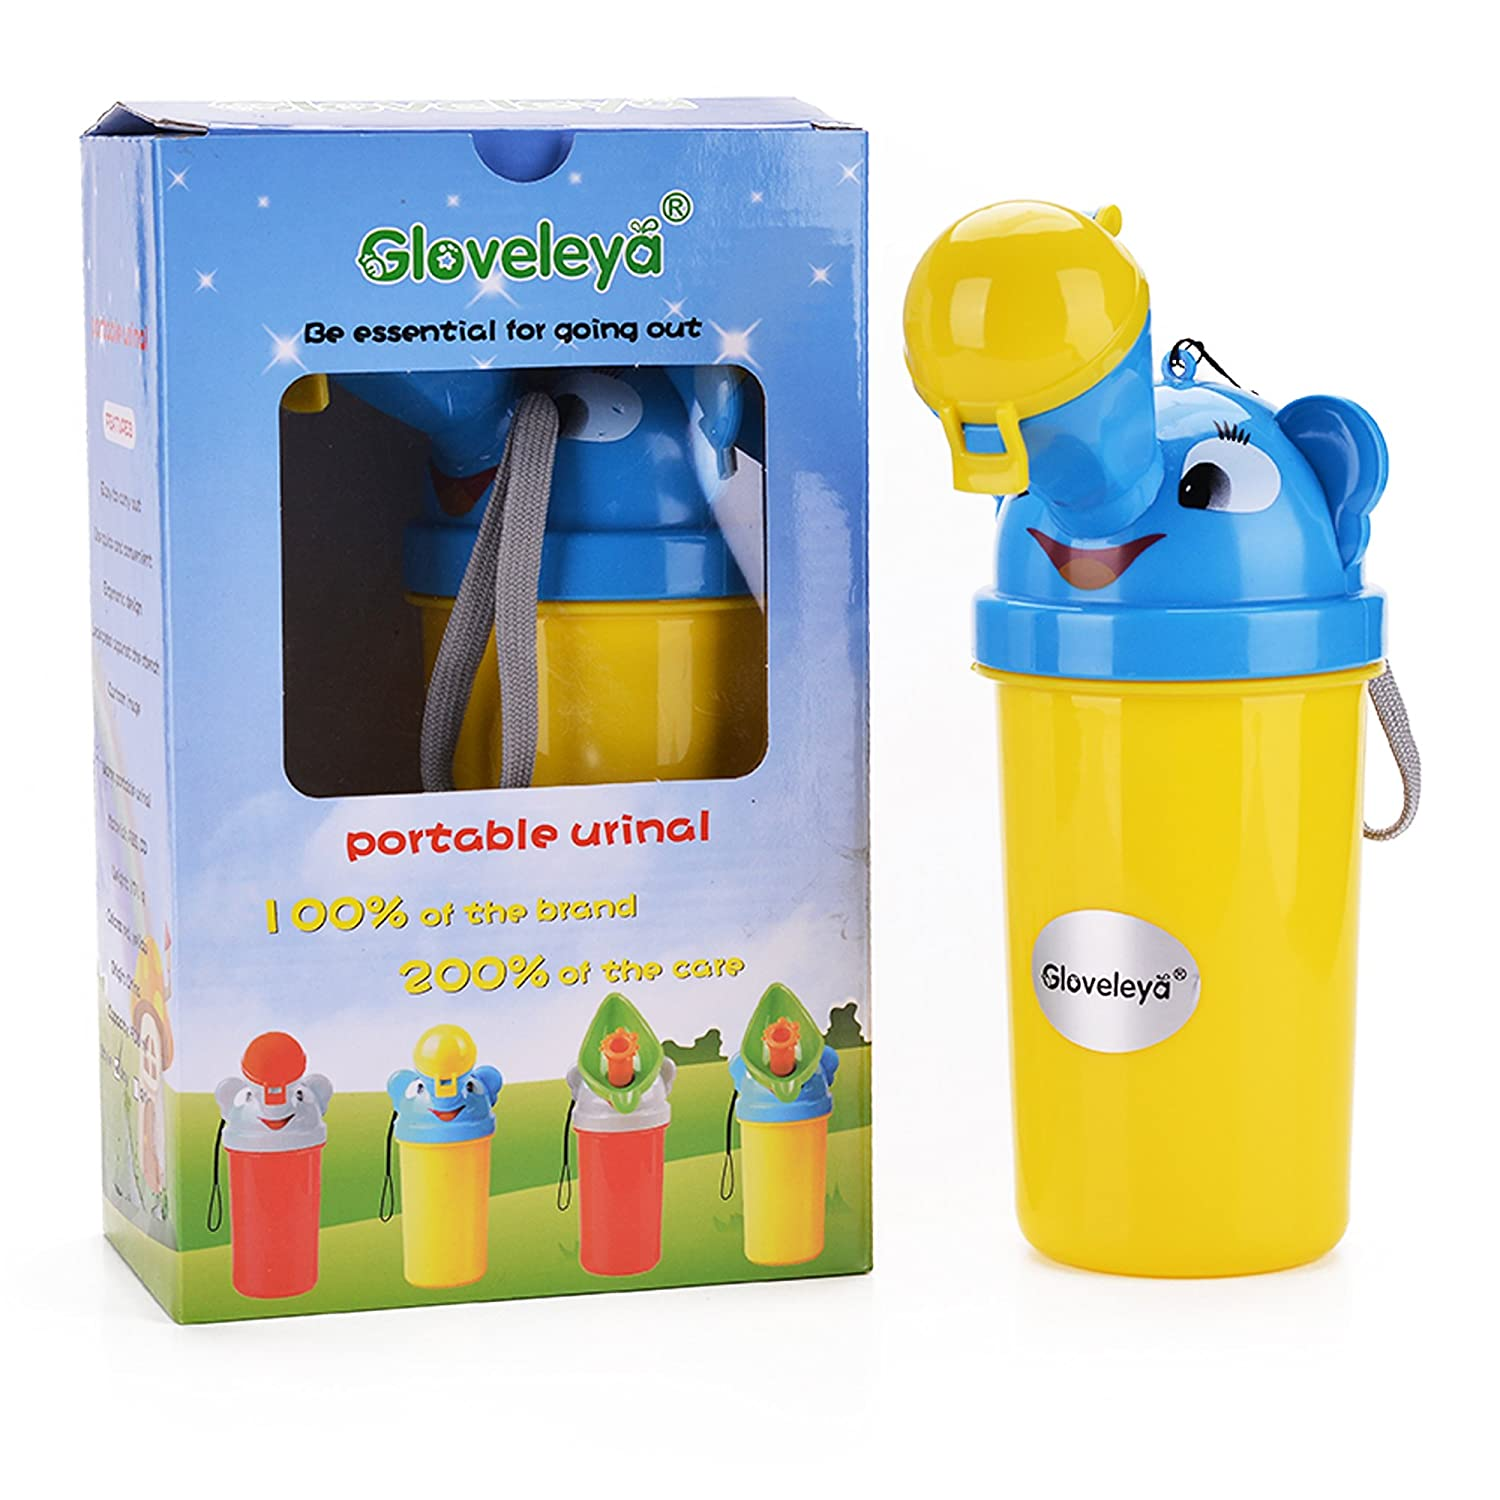 Gloveleya Baby Boy Portable Potty Urinal Toddler Training Pee for Camping Car Travel G0058